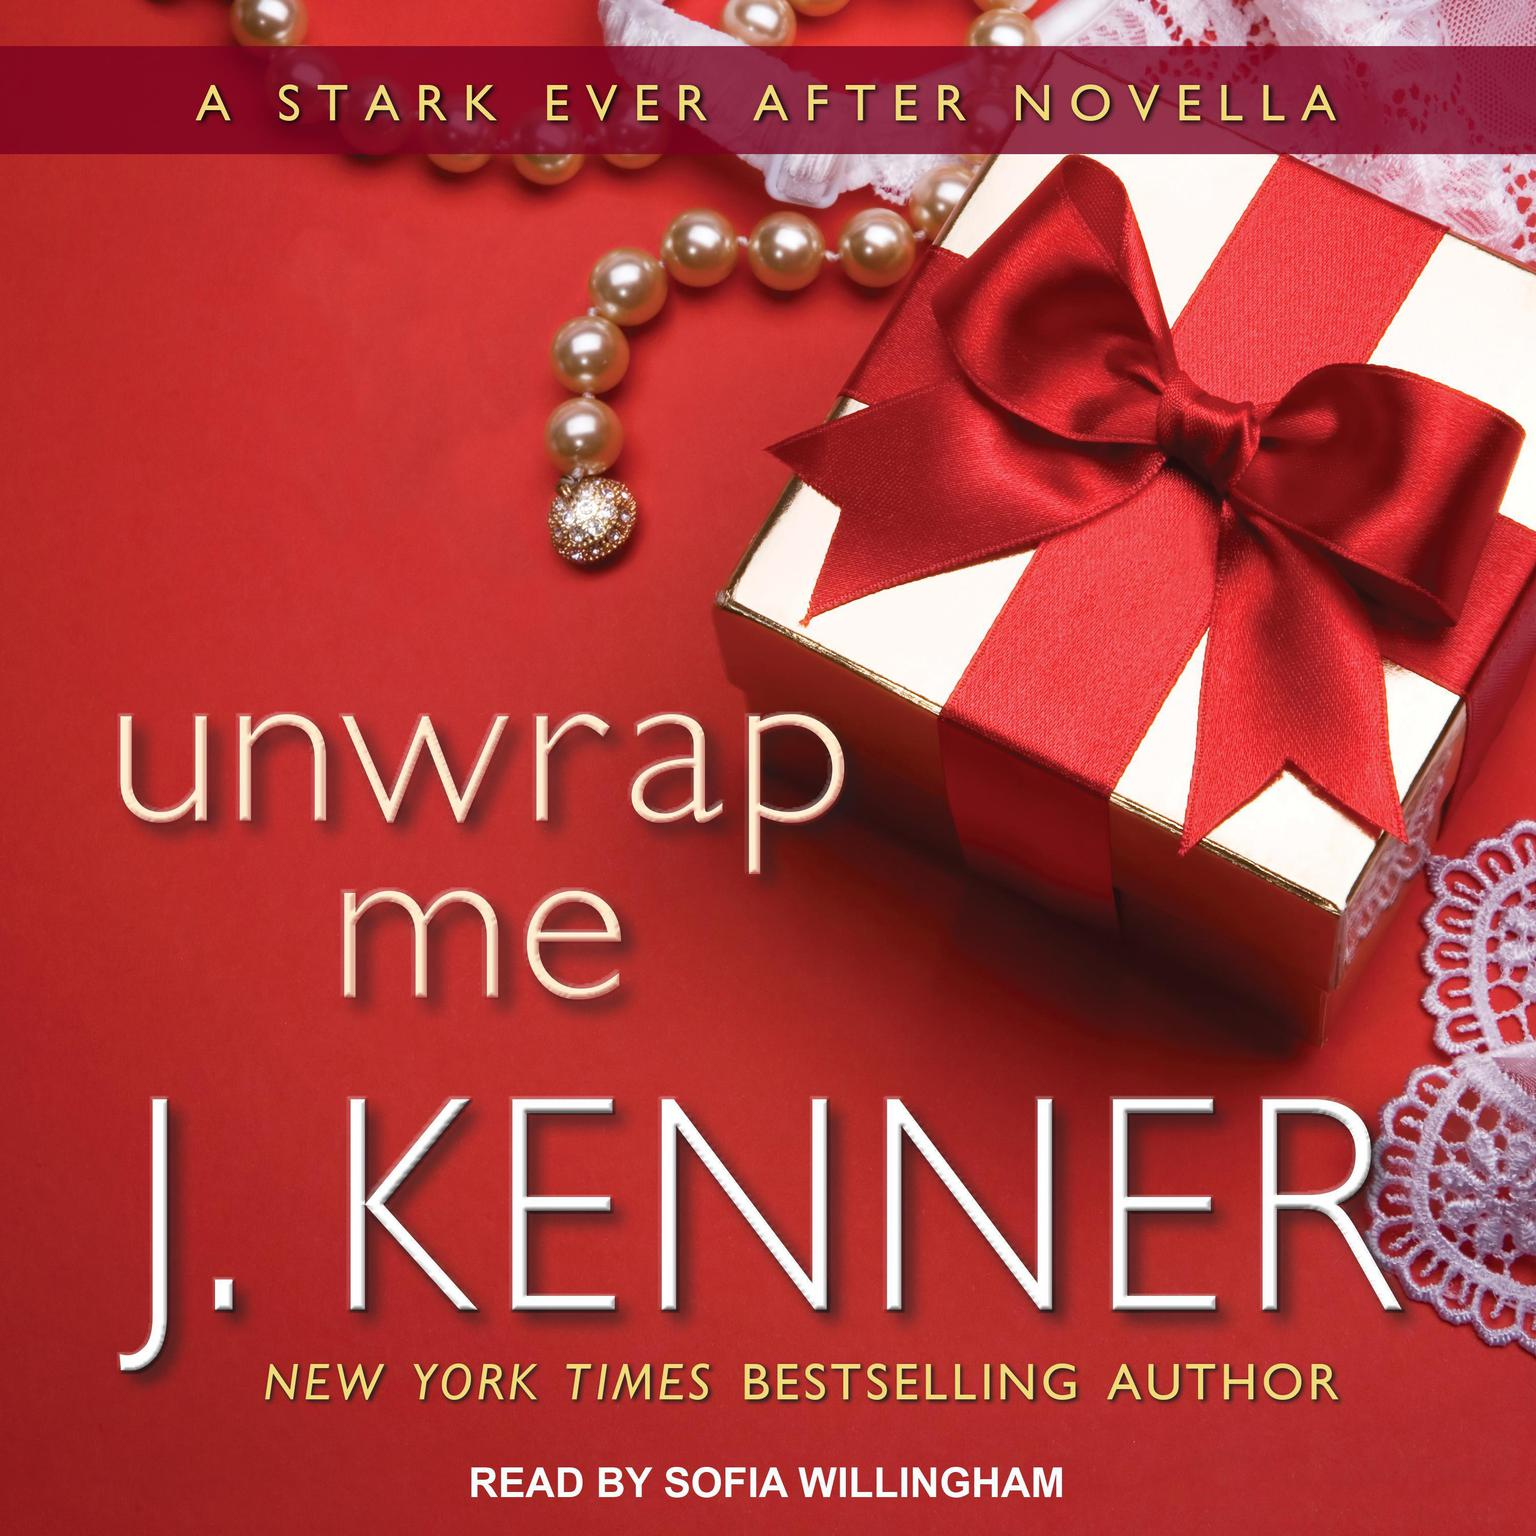 Printable Unwrap Me: A Stark Ever After Novella Audiobook Cover Art